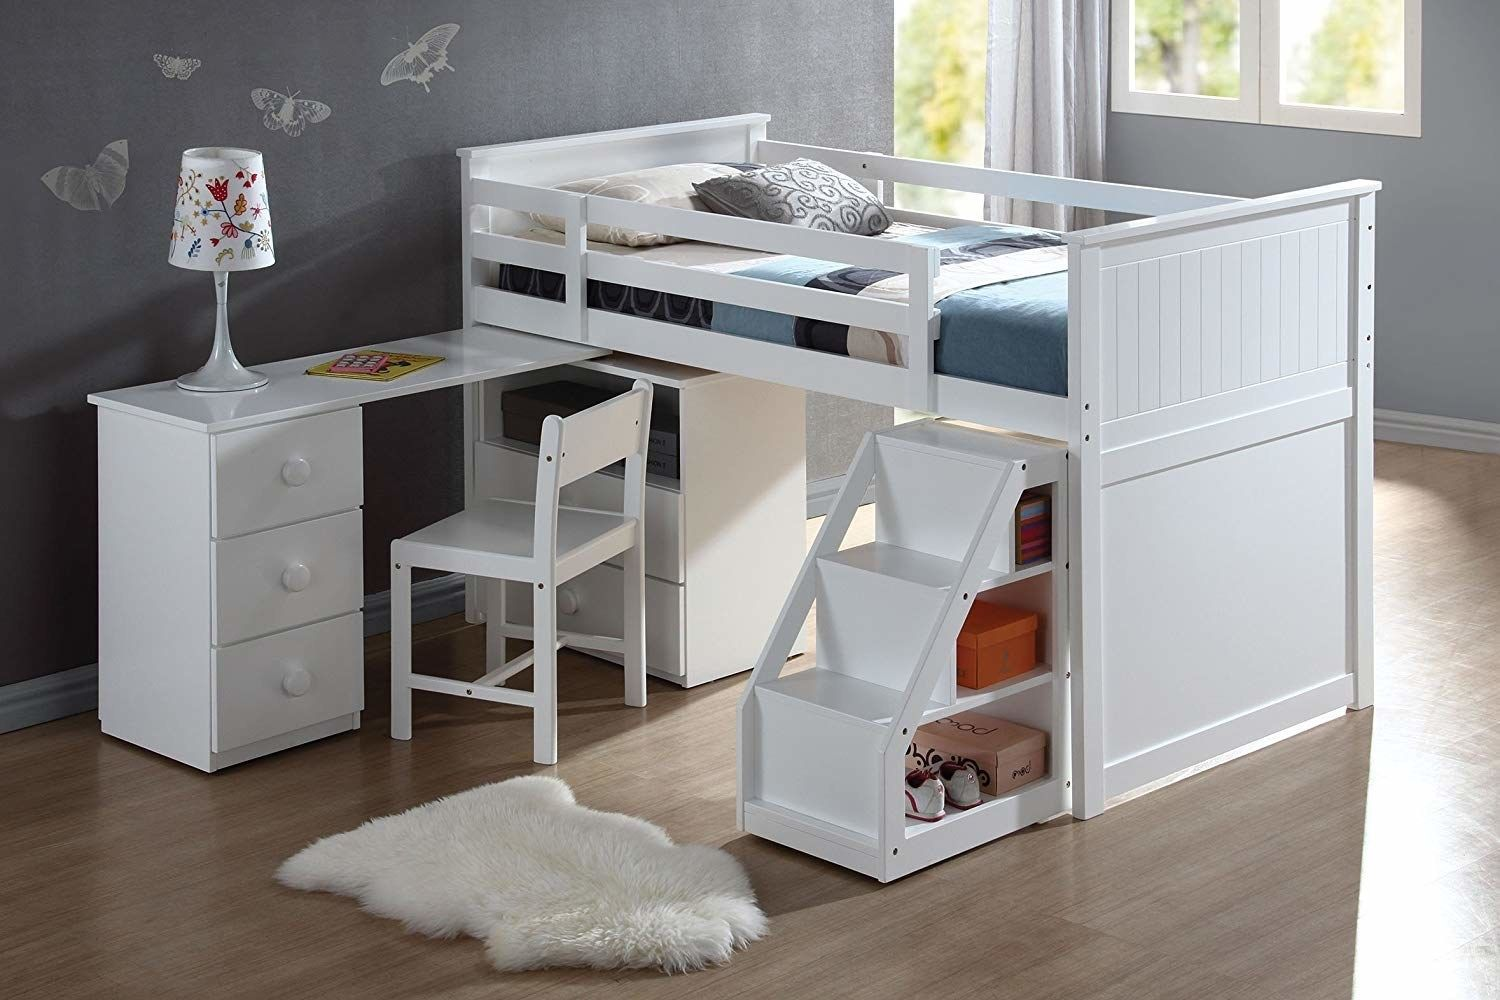 17 Loft Beds That'll Save You So Much Space Low loft